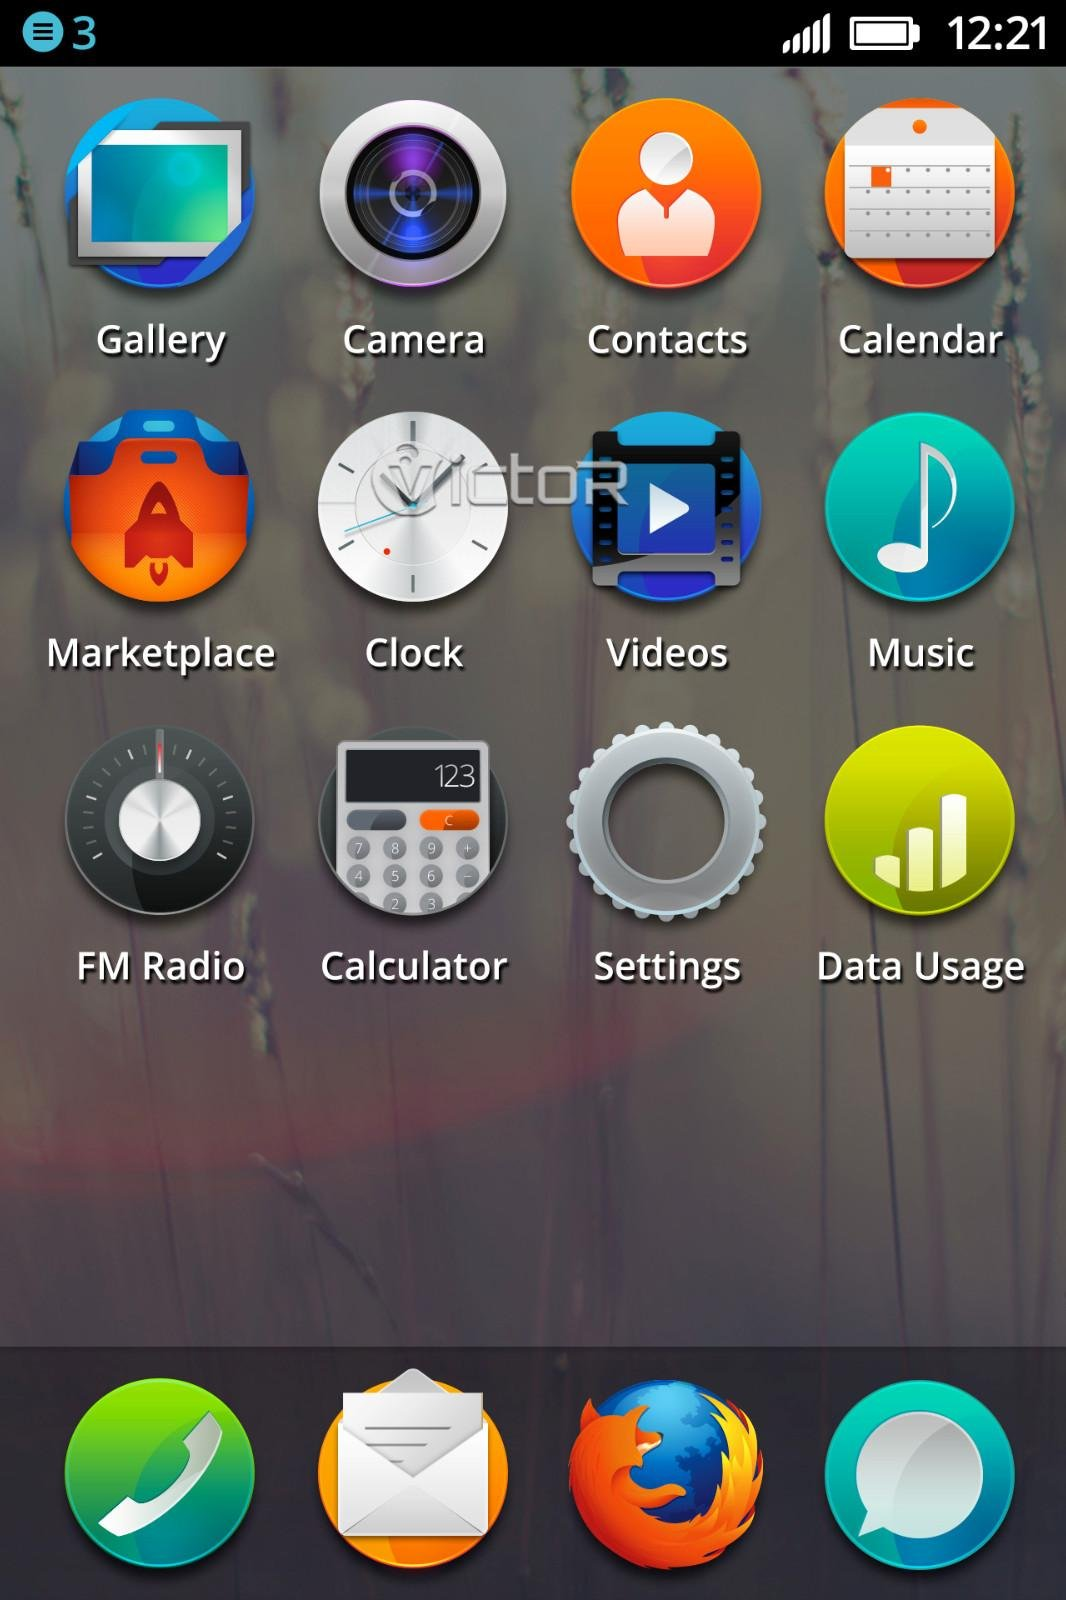 firefox os - firefox operating system - phone operating systems - 1